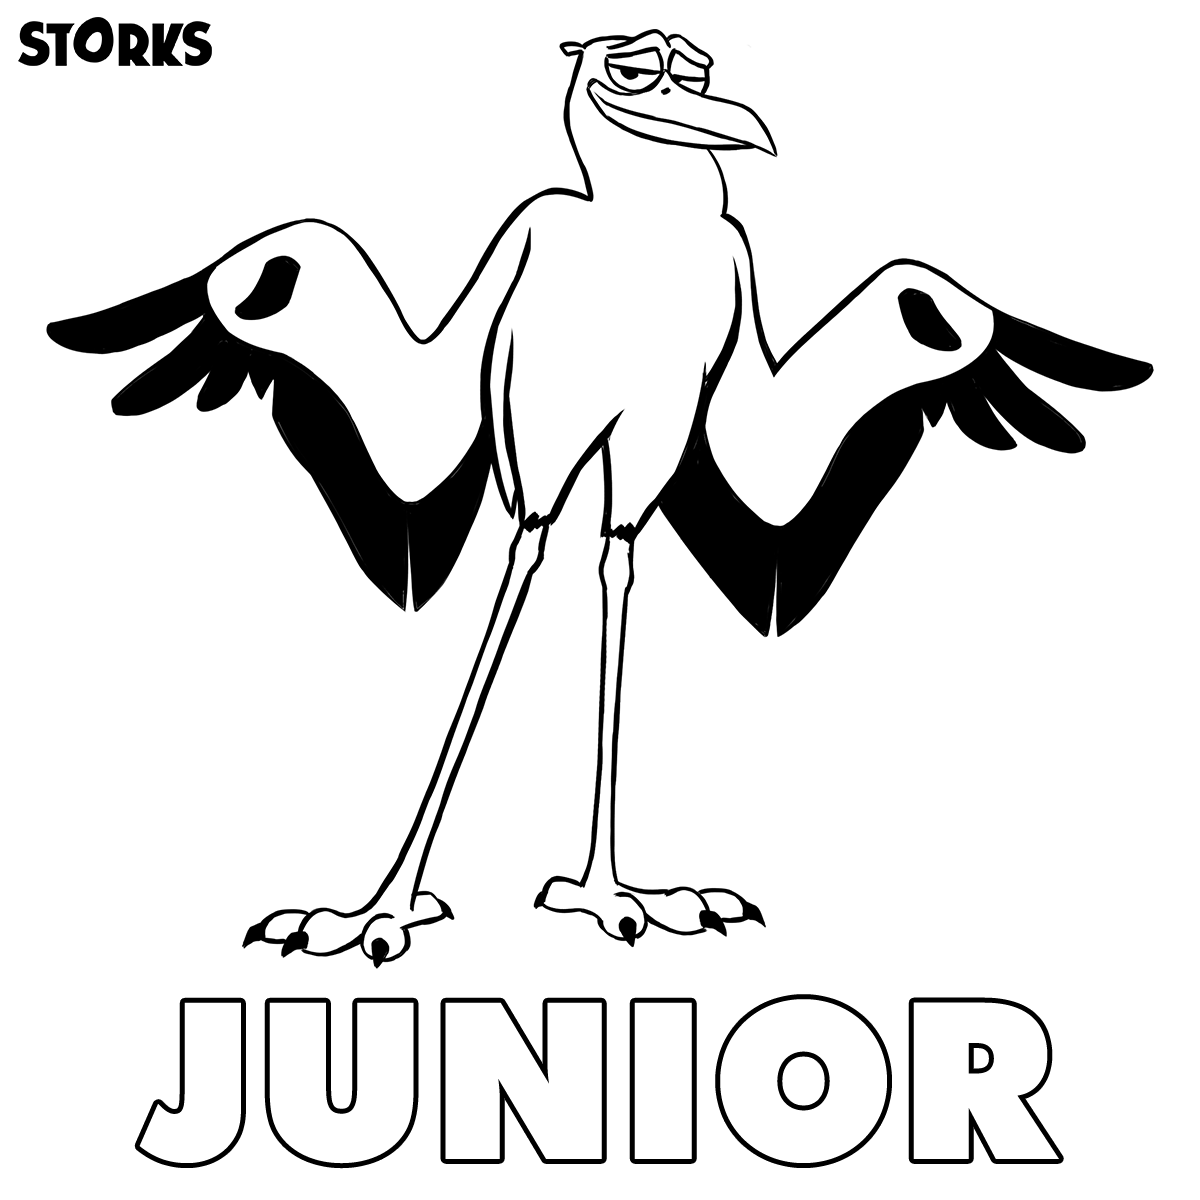 stork with baby coloring pages - photo#30